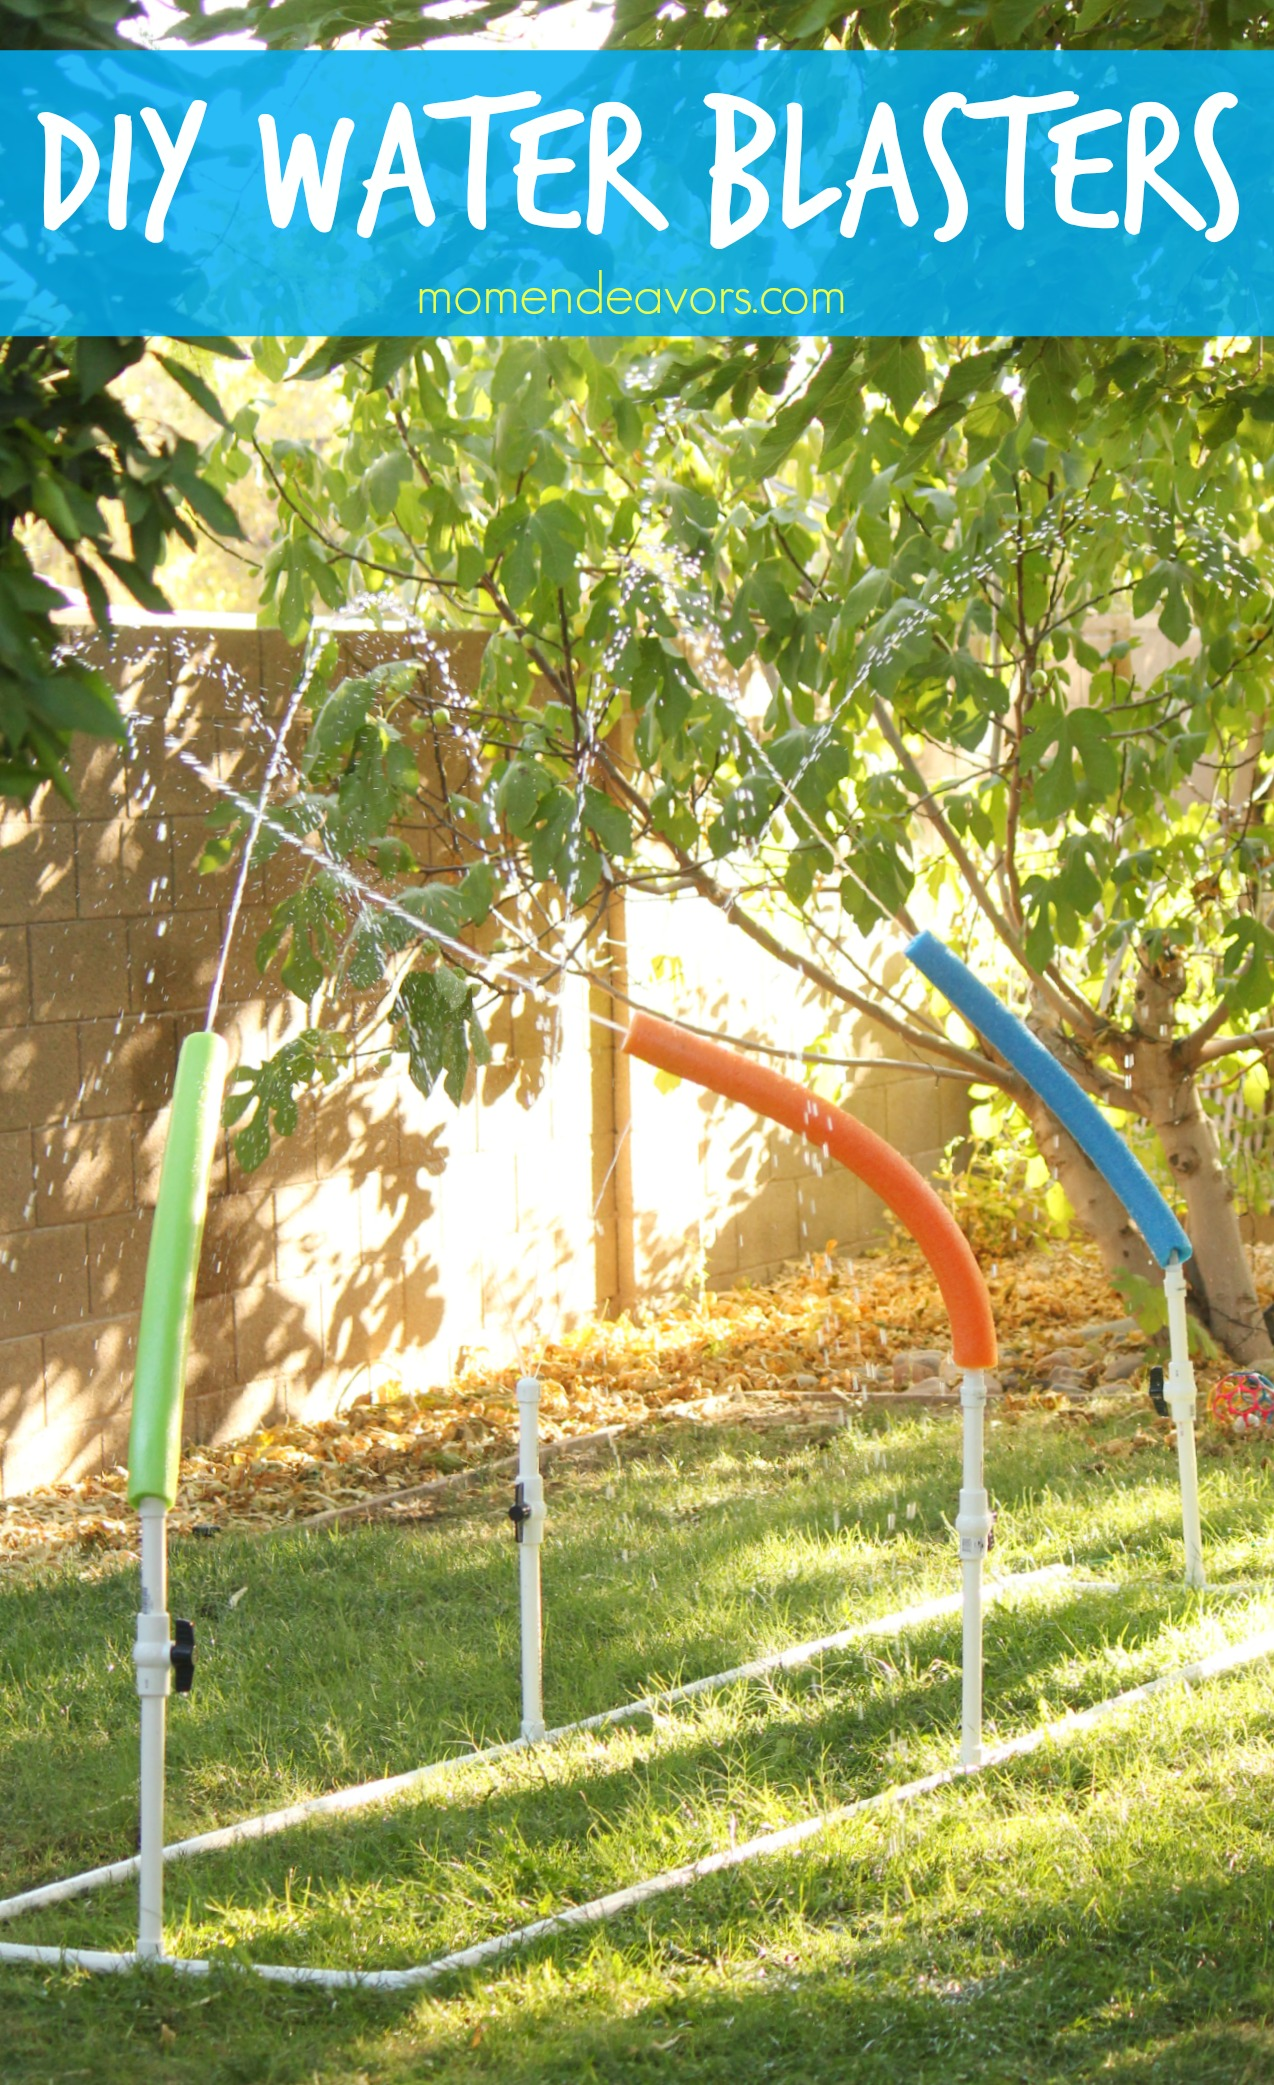 DIY-Water-Blasters-Kiddie-Sprinkler